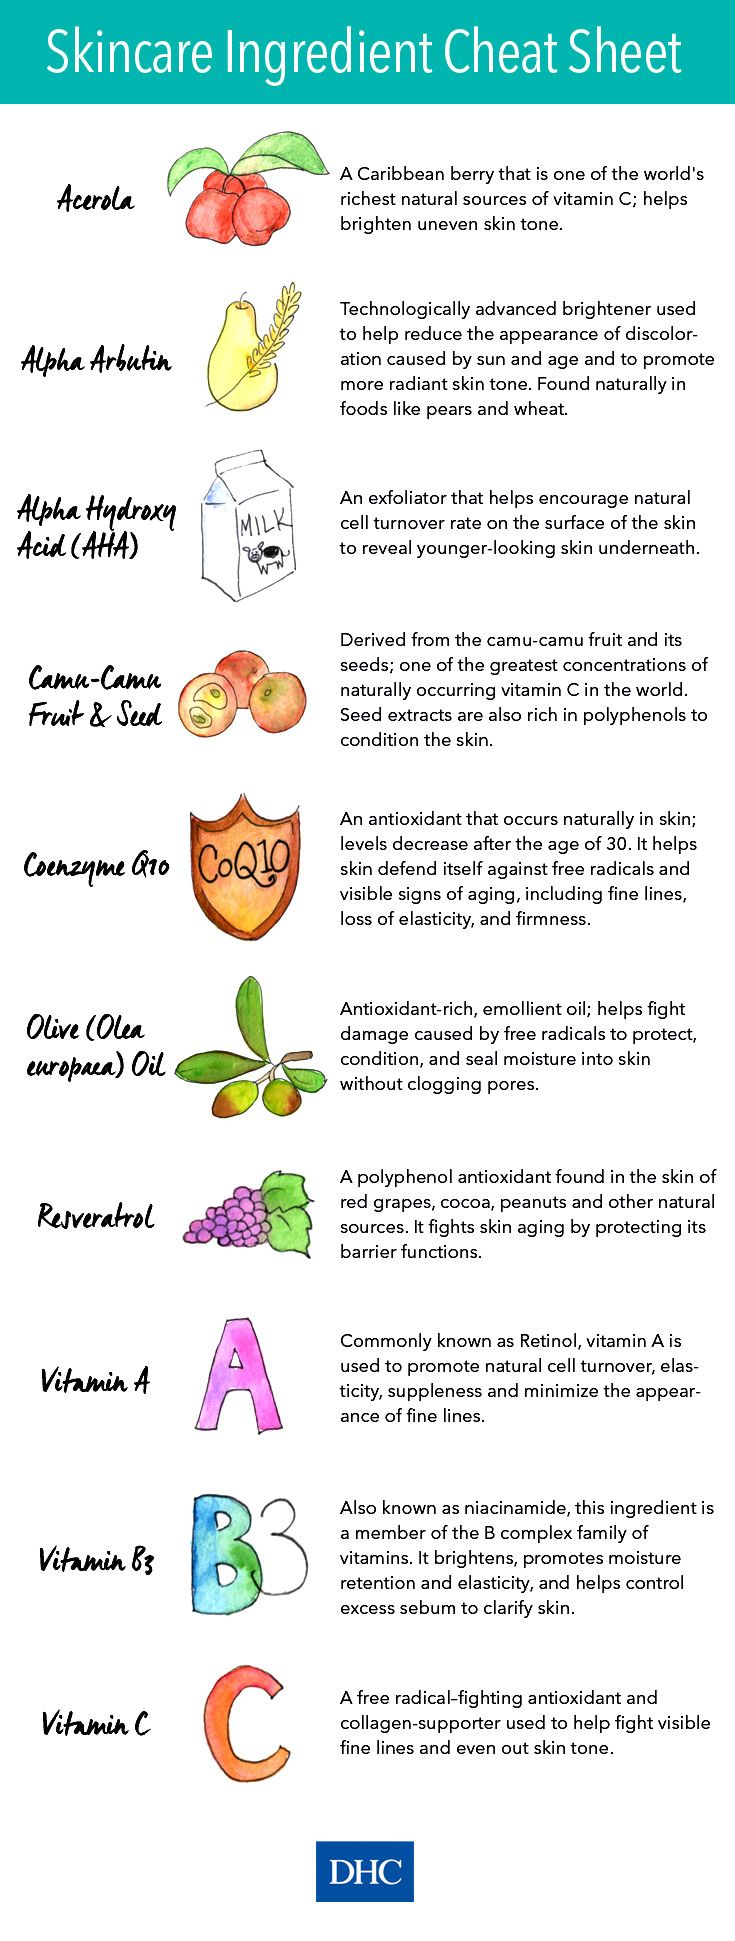 Take the confusion out of skincare shopping with this ingredient cheat sheet!